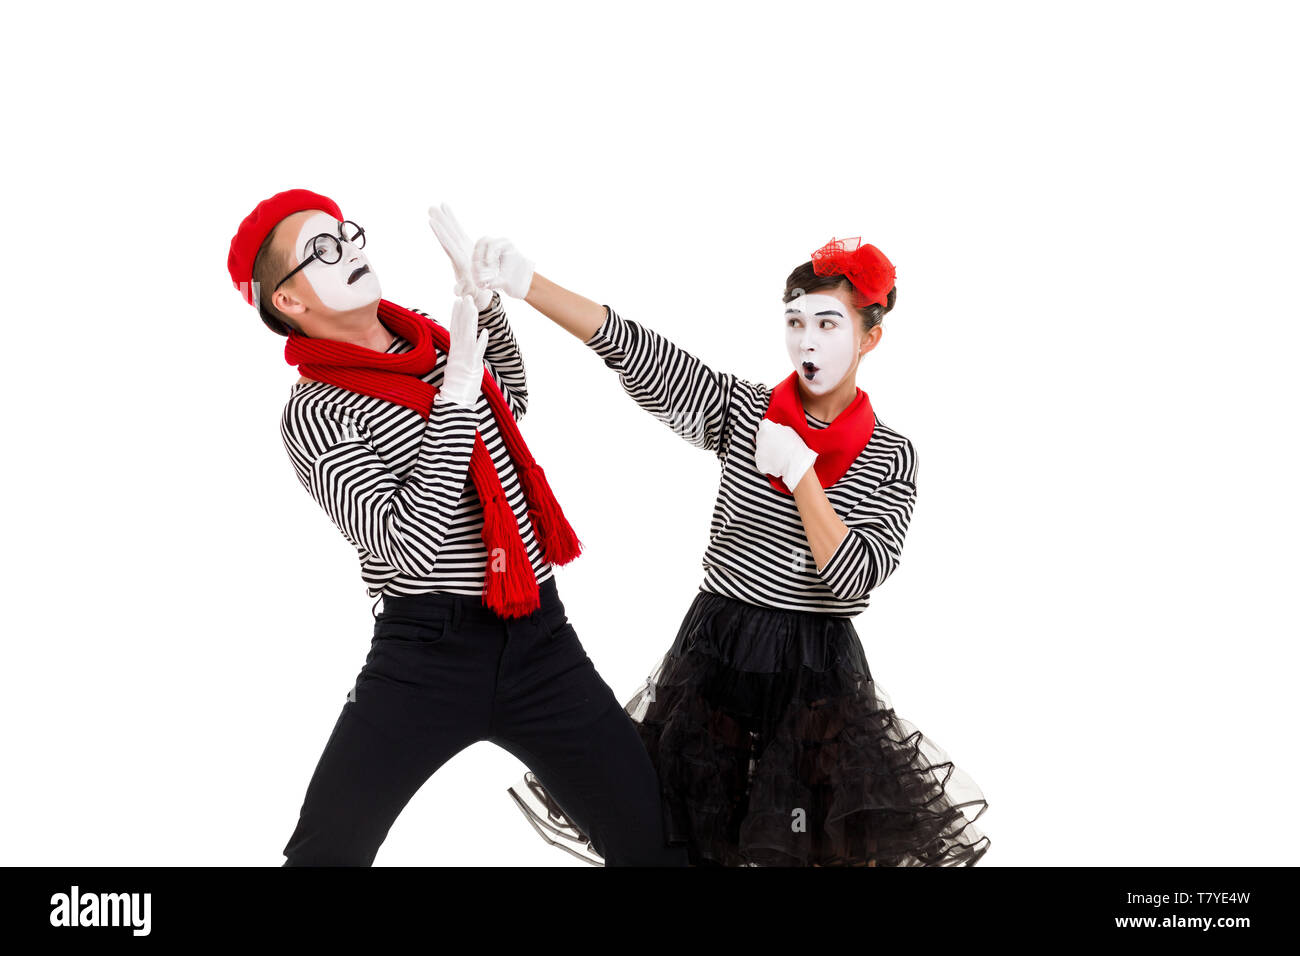 mimes in striped shirts. couple fighting each other for fun isolated on white background - Stock Image